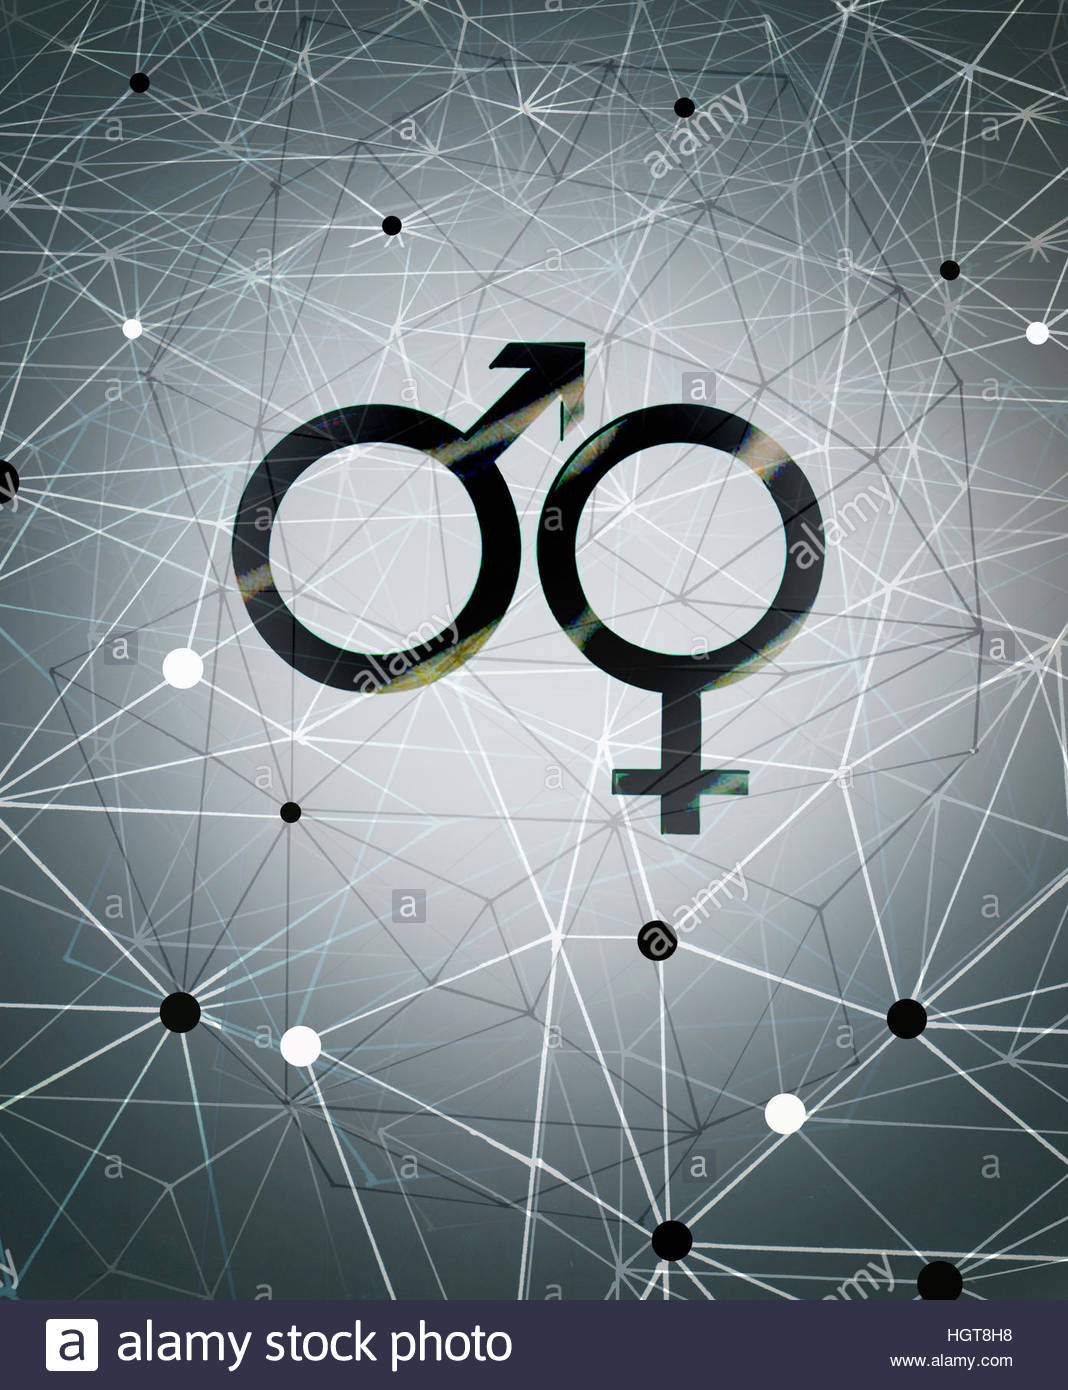 Male and female gender symbols and network pattern - Stock Image